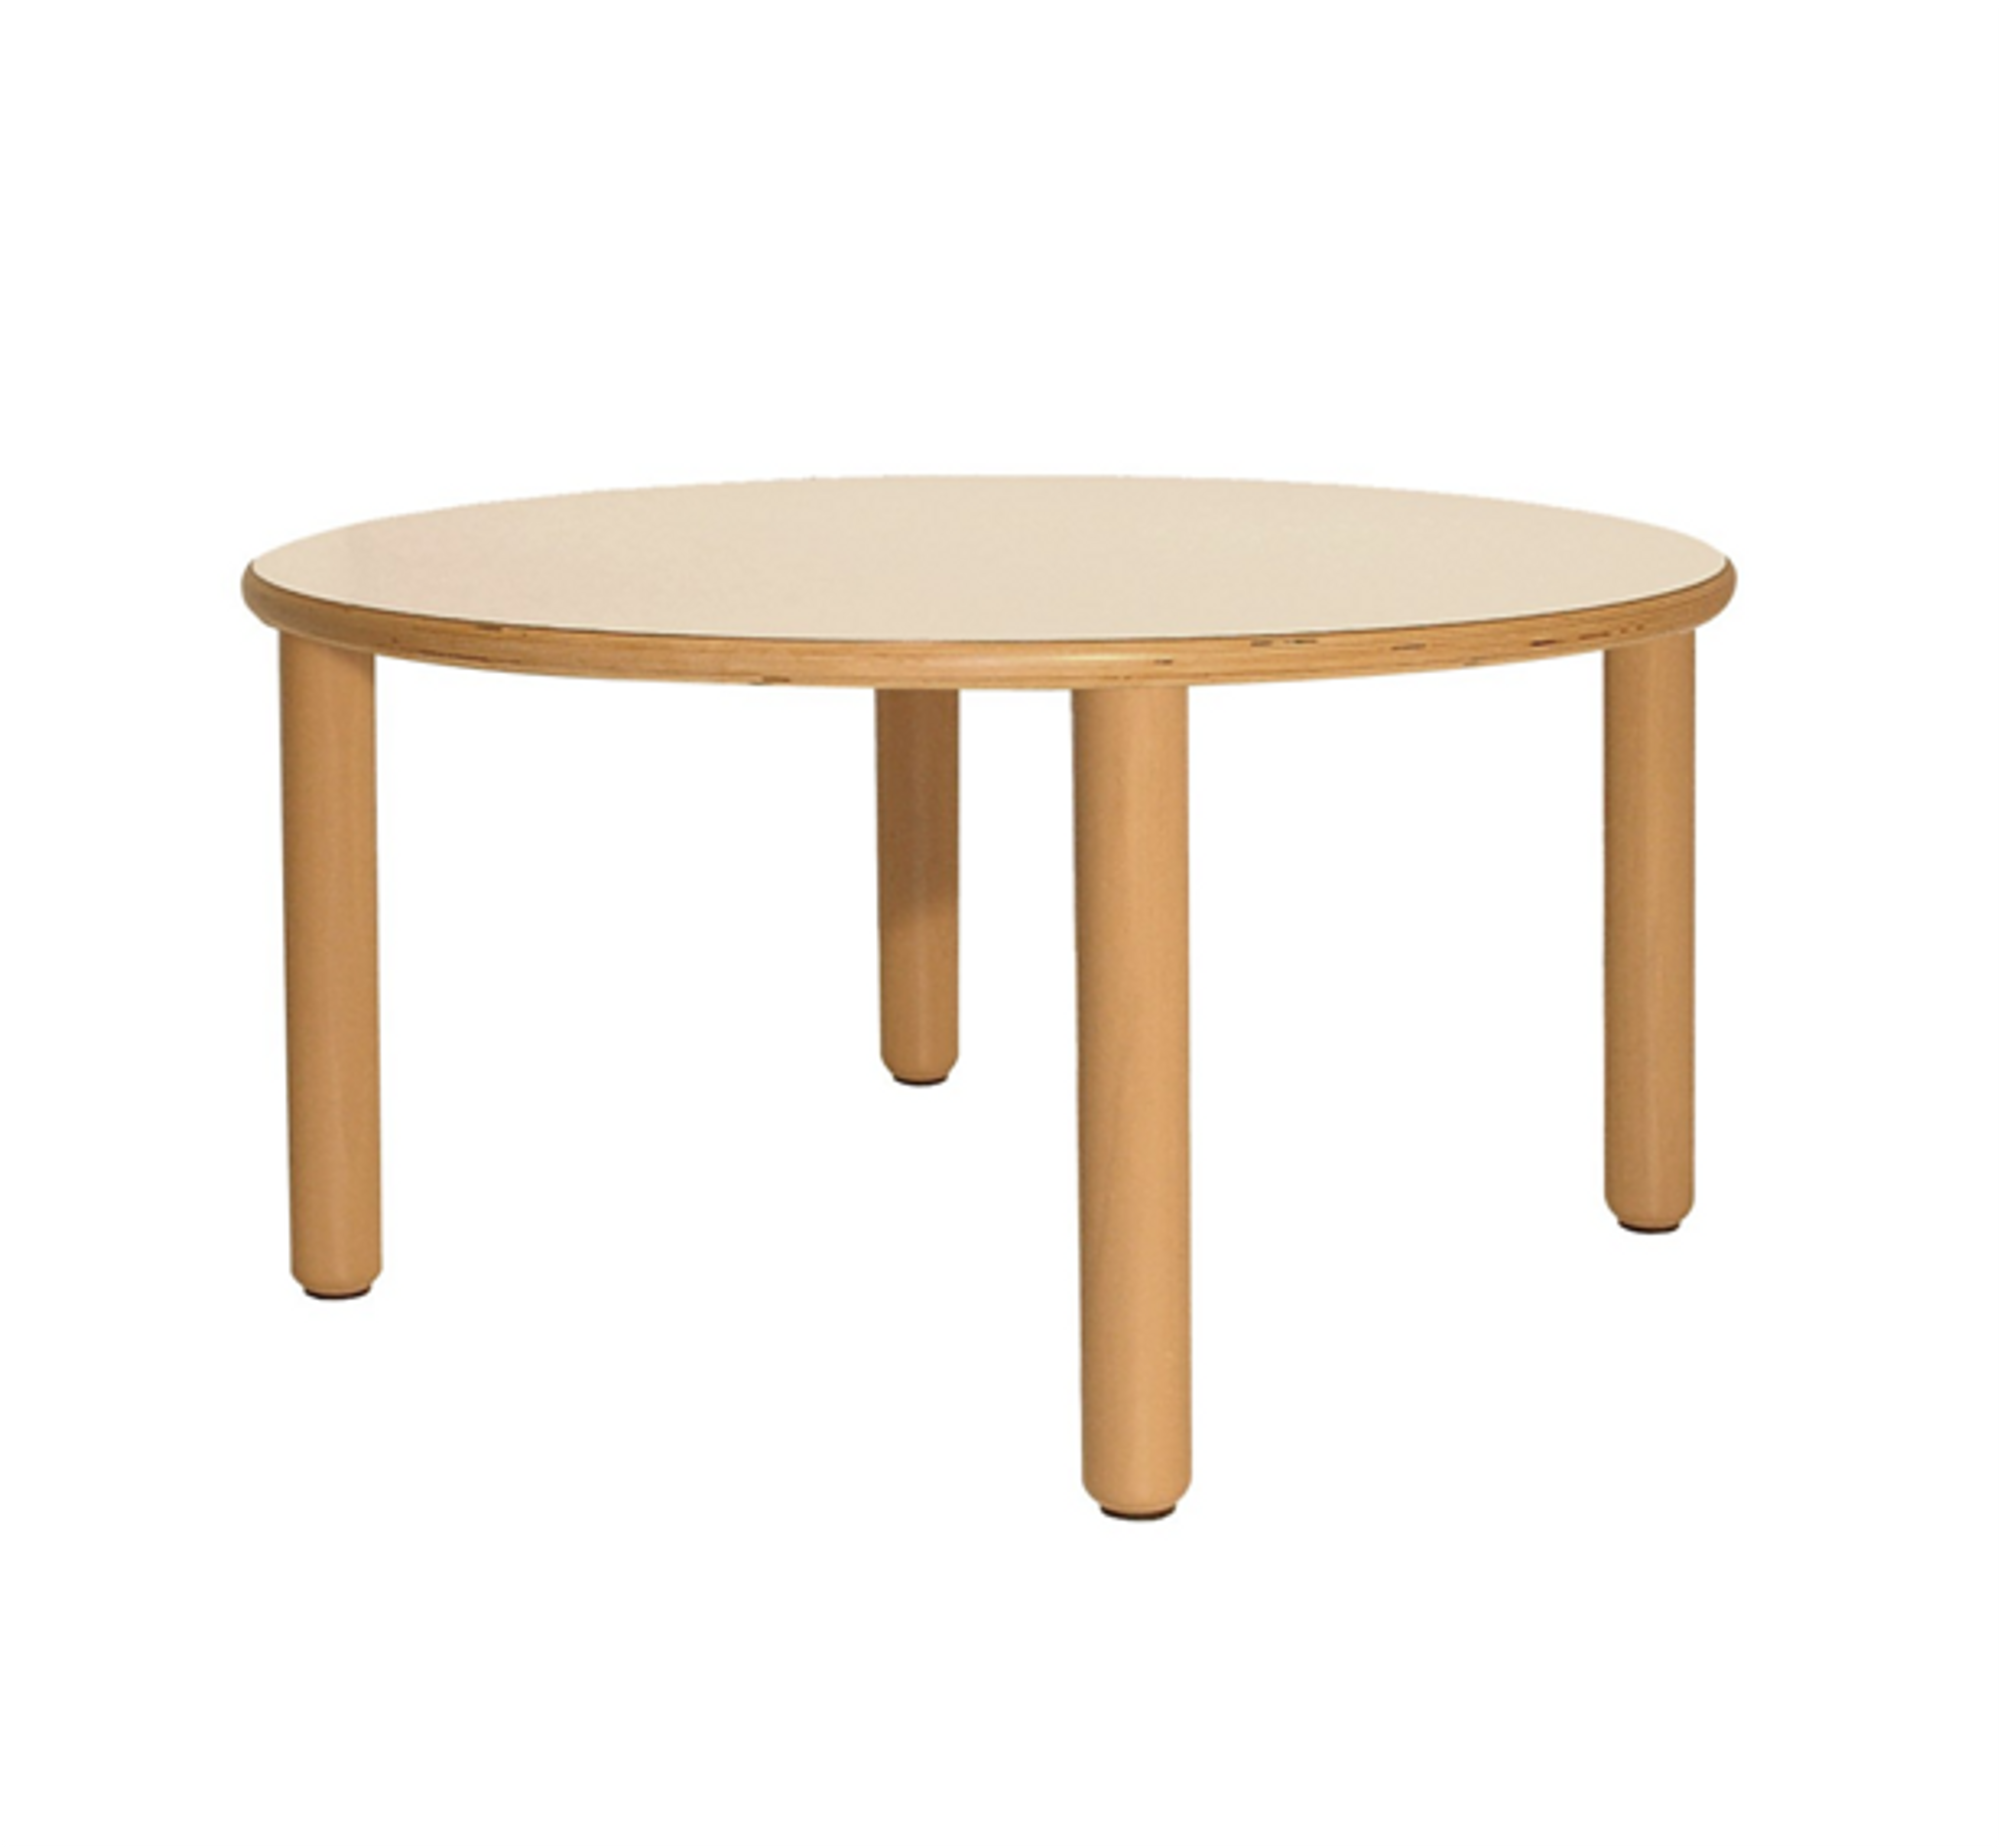 Round Table 90cm Diameter - Multiple Heights Available